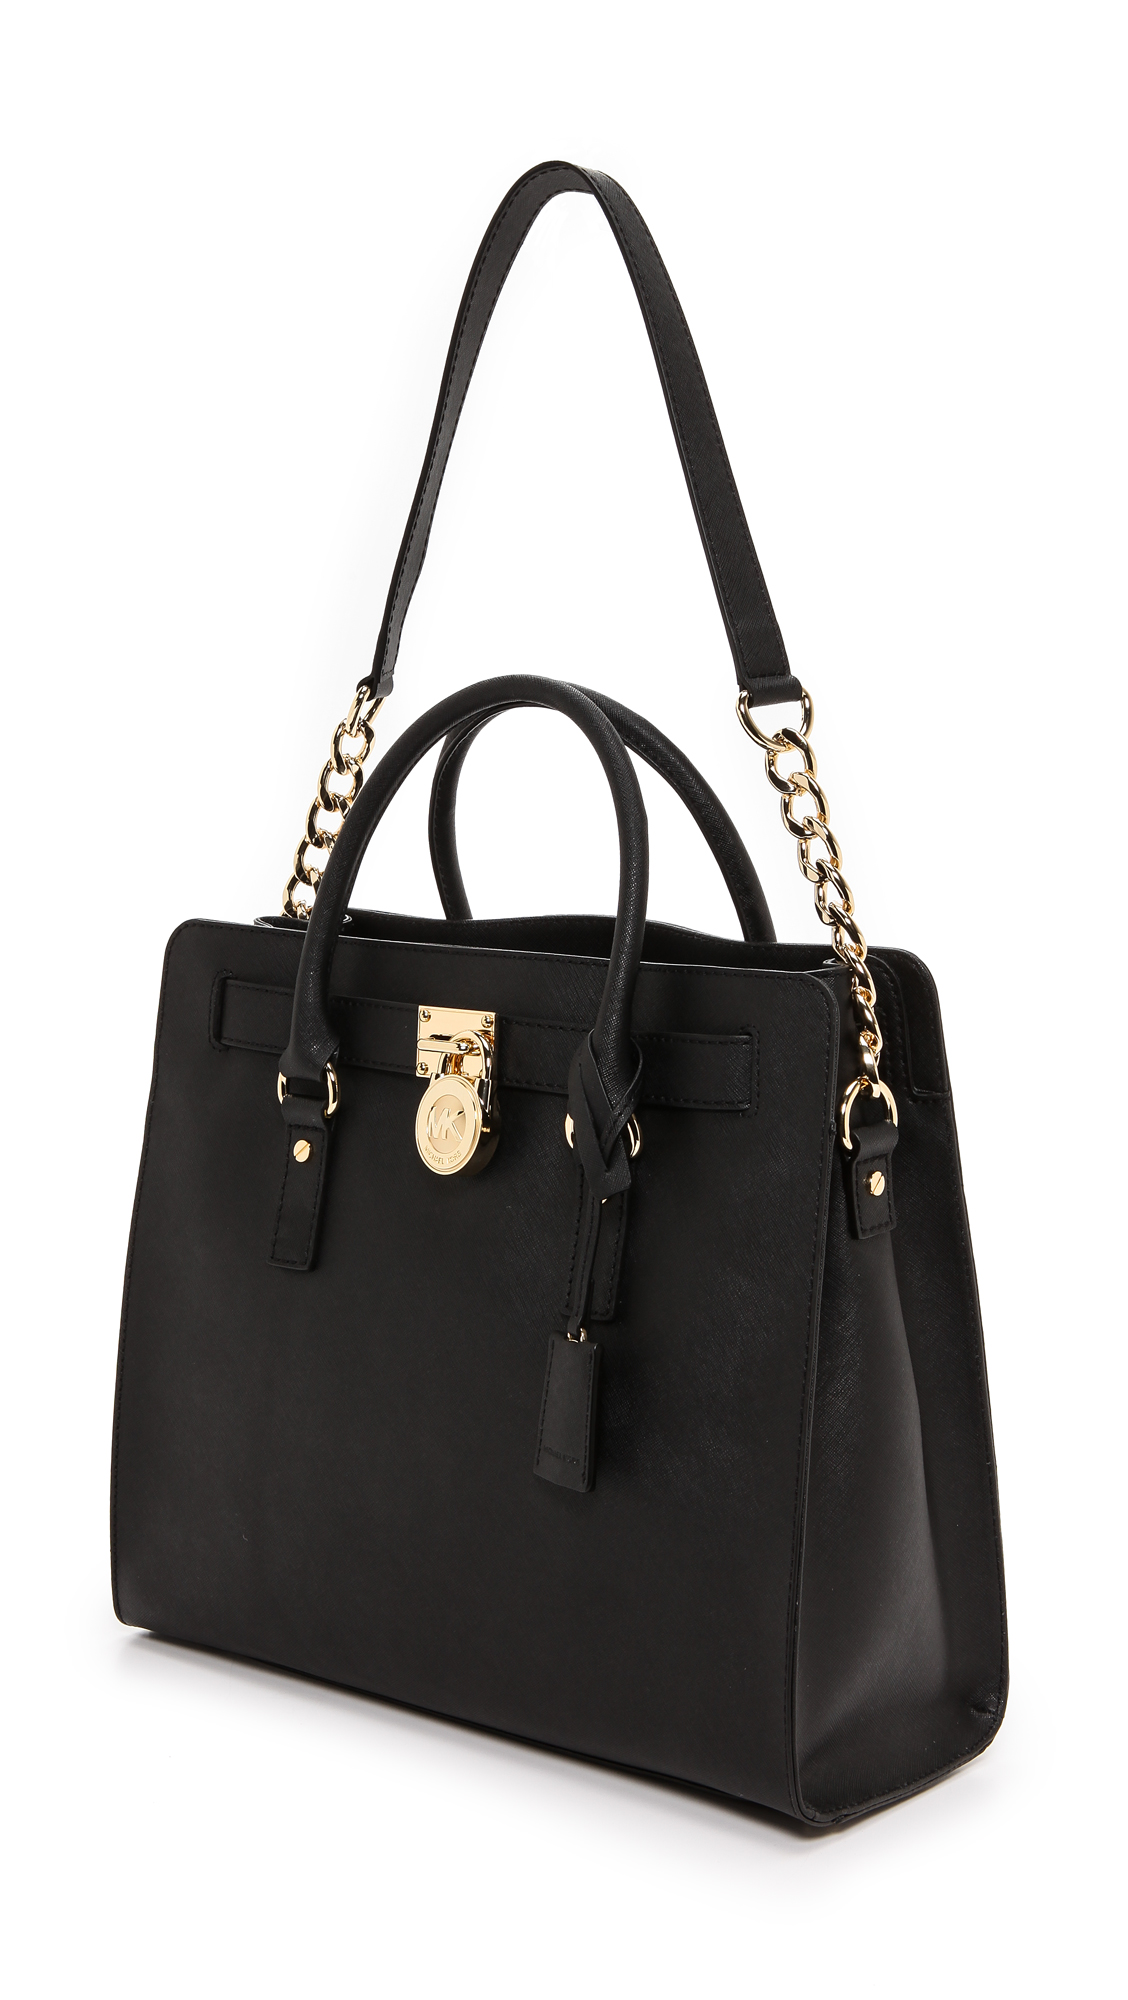 black and gray michael kors bag ya6d  black and gray michael kors bag